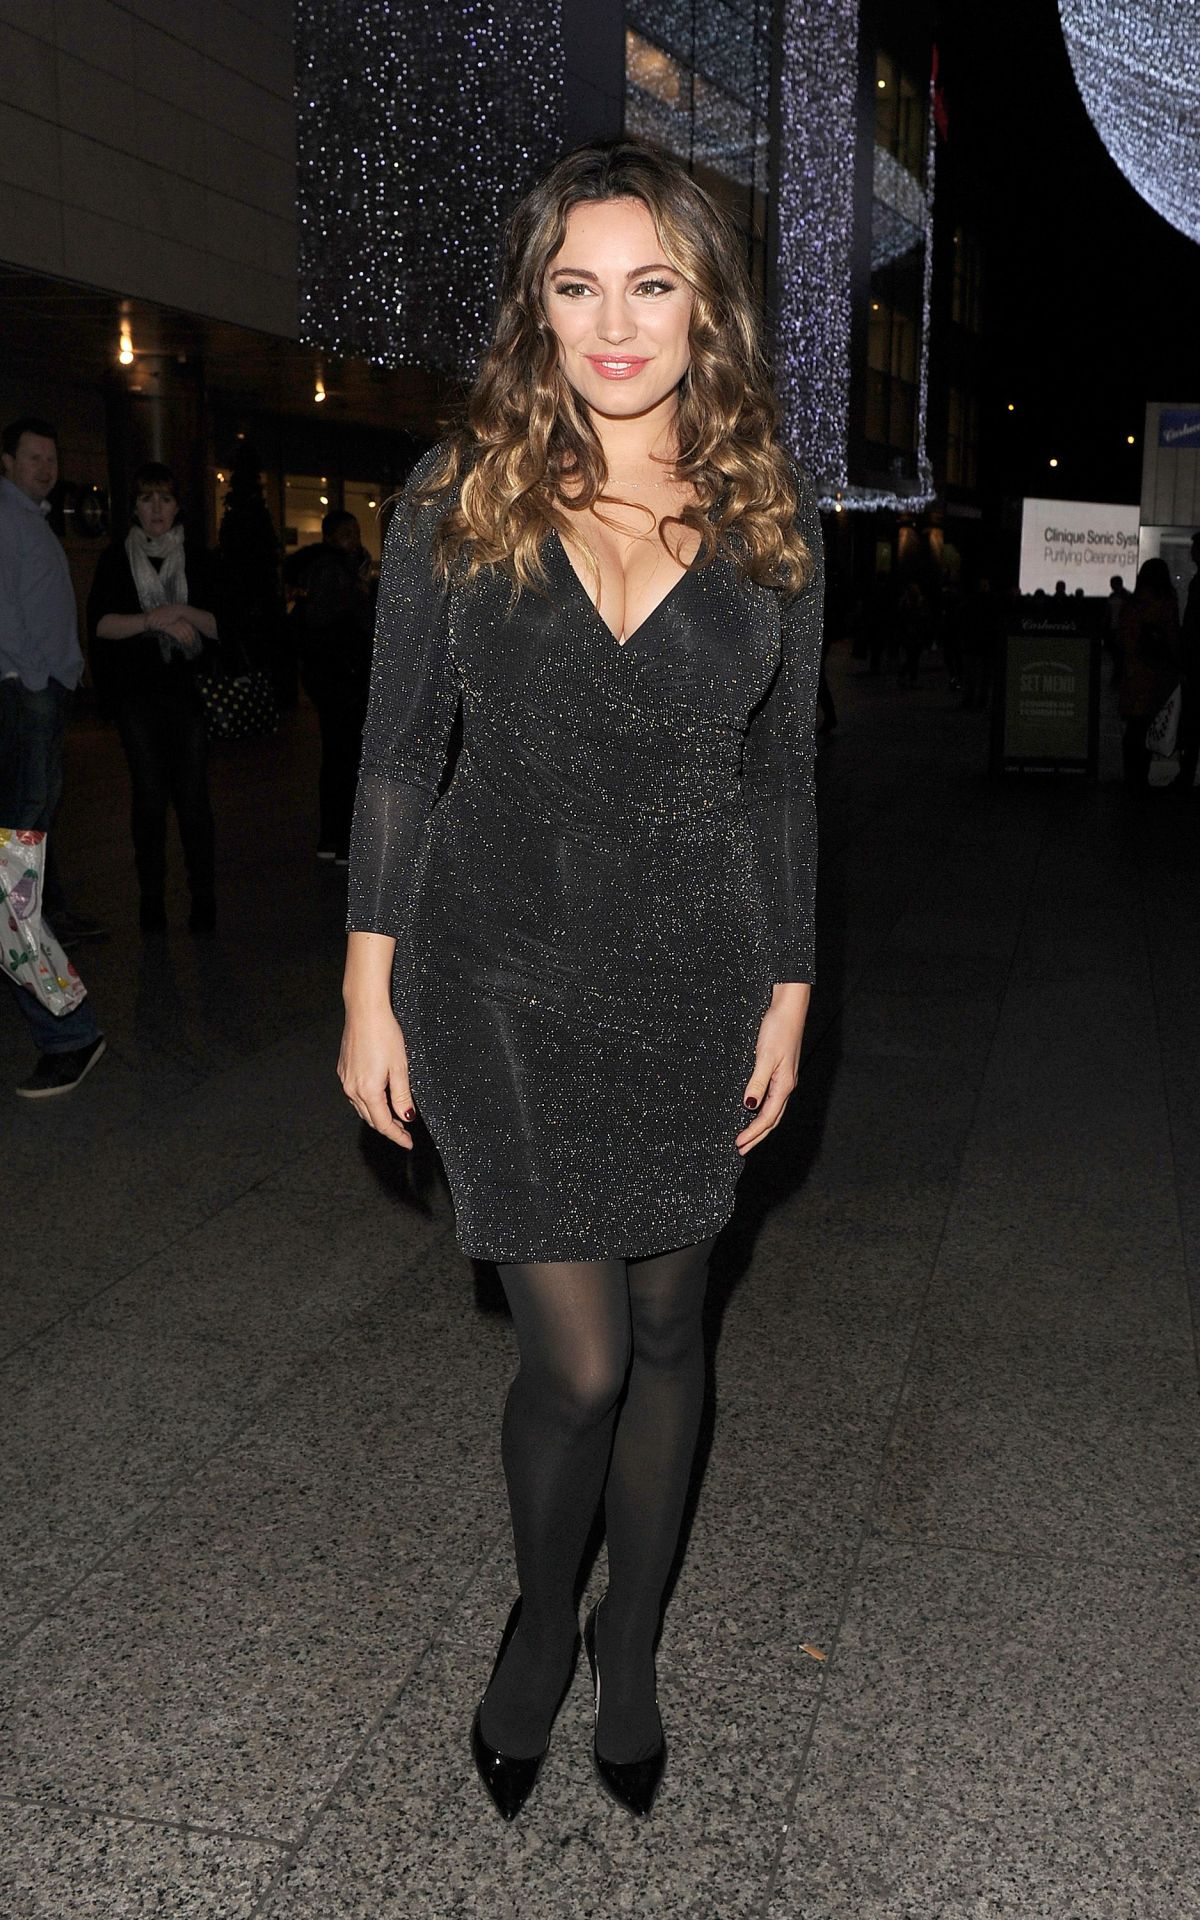 KELLY BROOK at Ping Pong Restaurant Launch & Christmas Party in